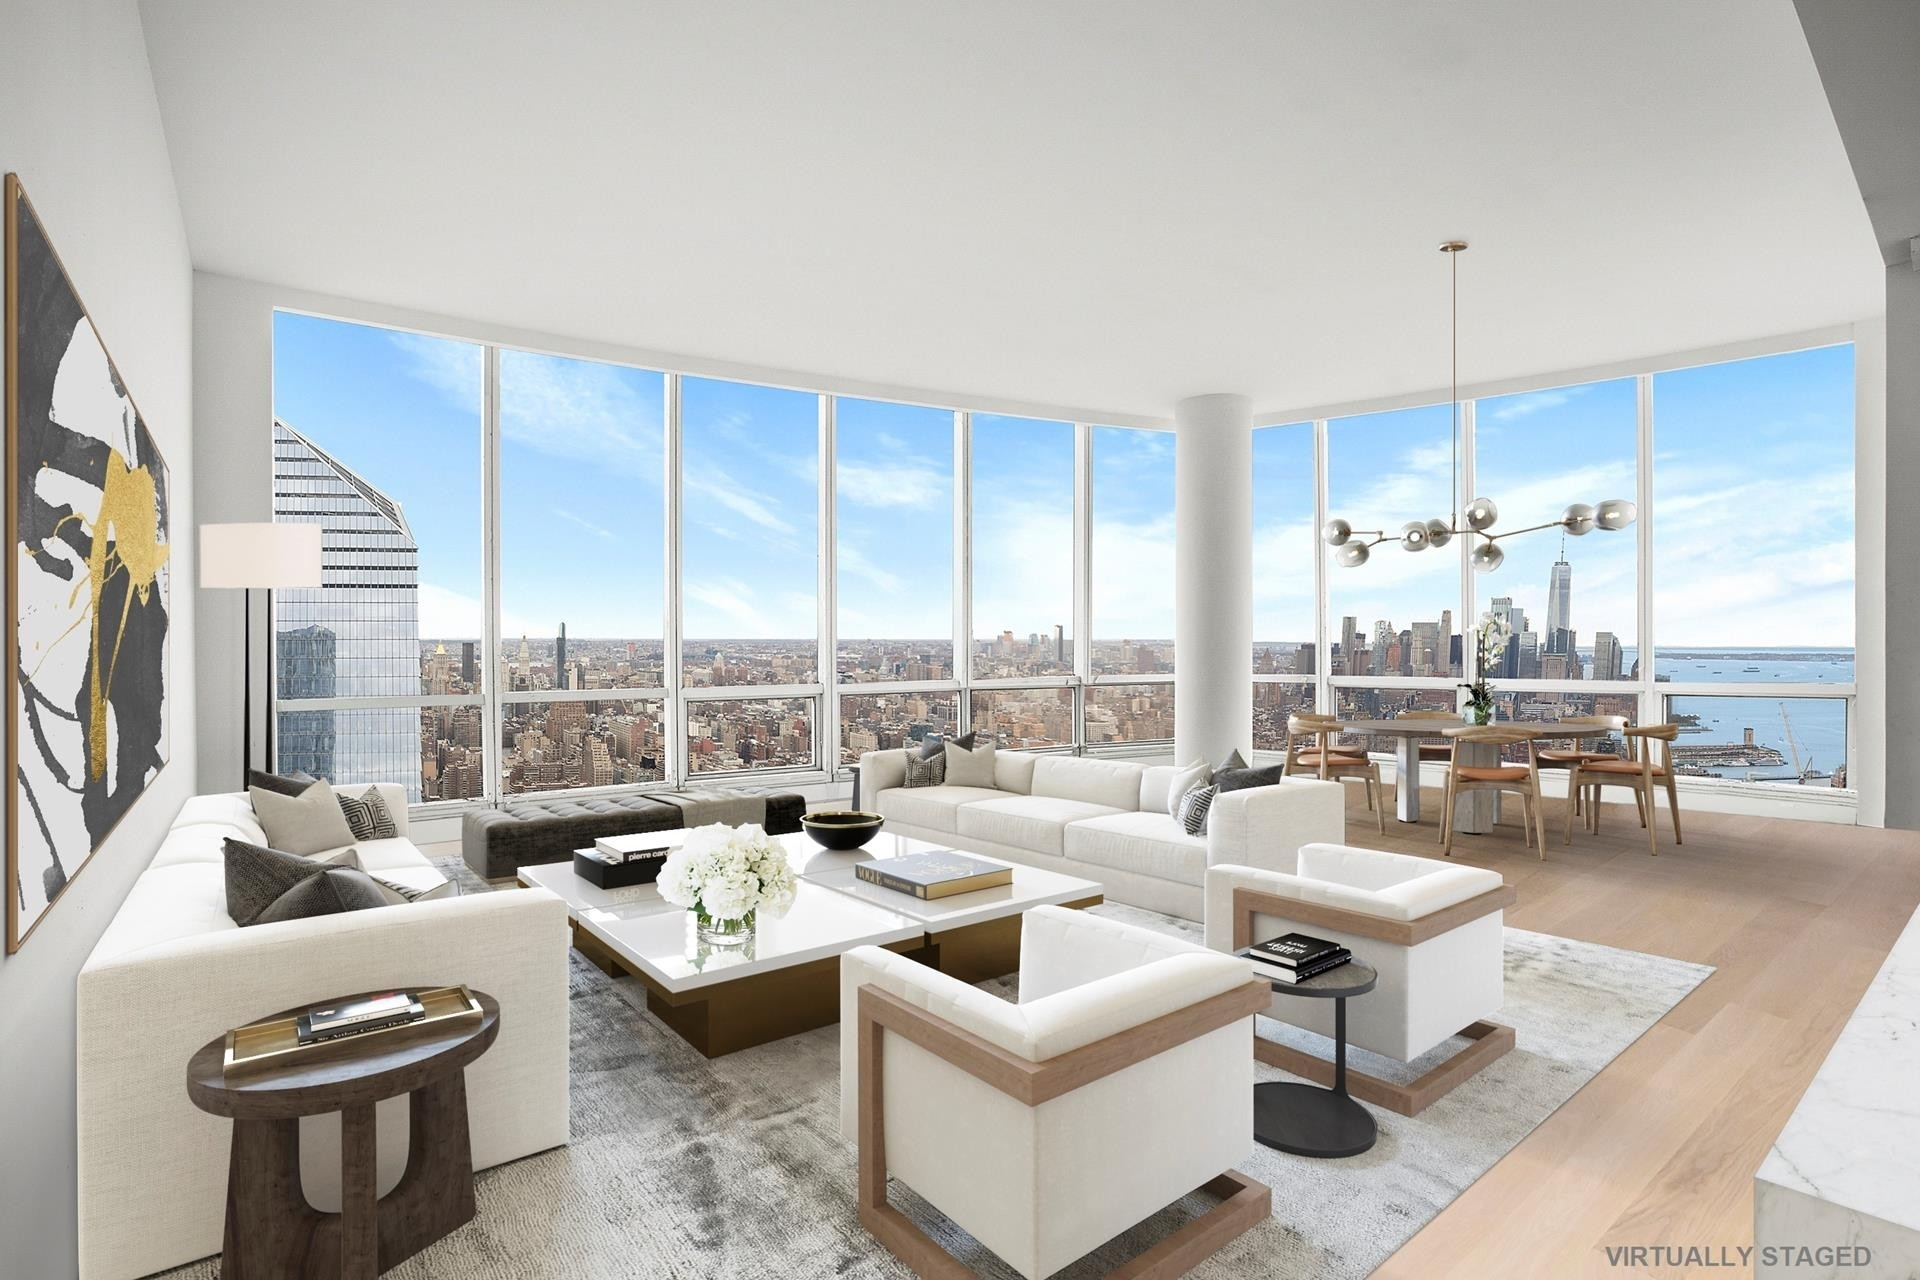 Property at 15 Hudson Yards, 75A New York